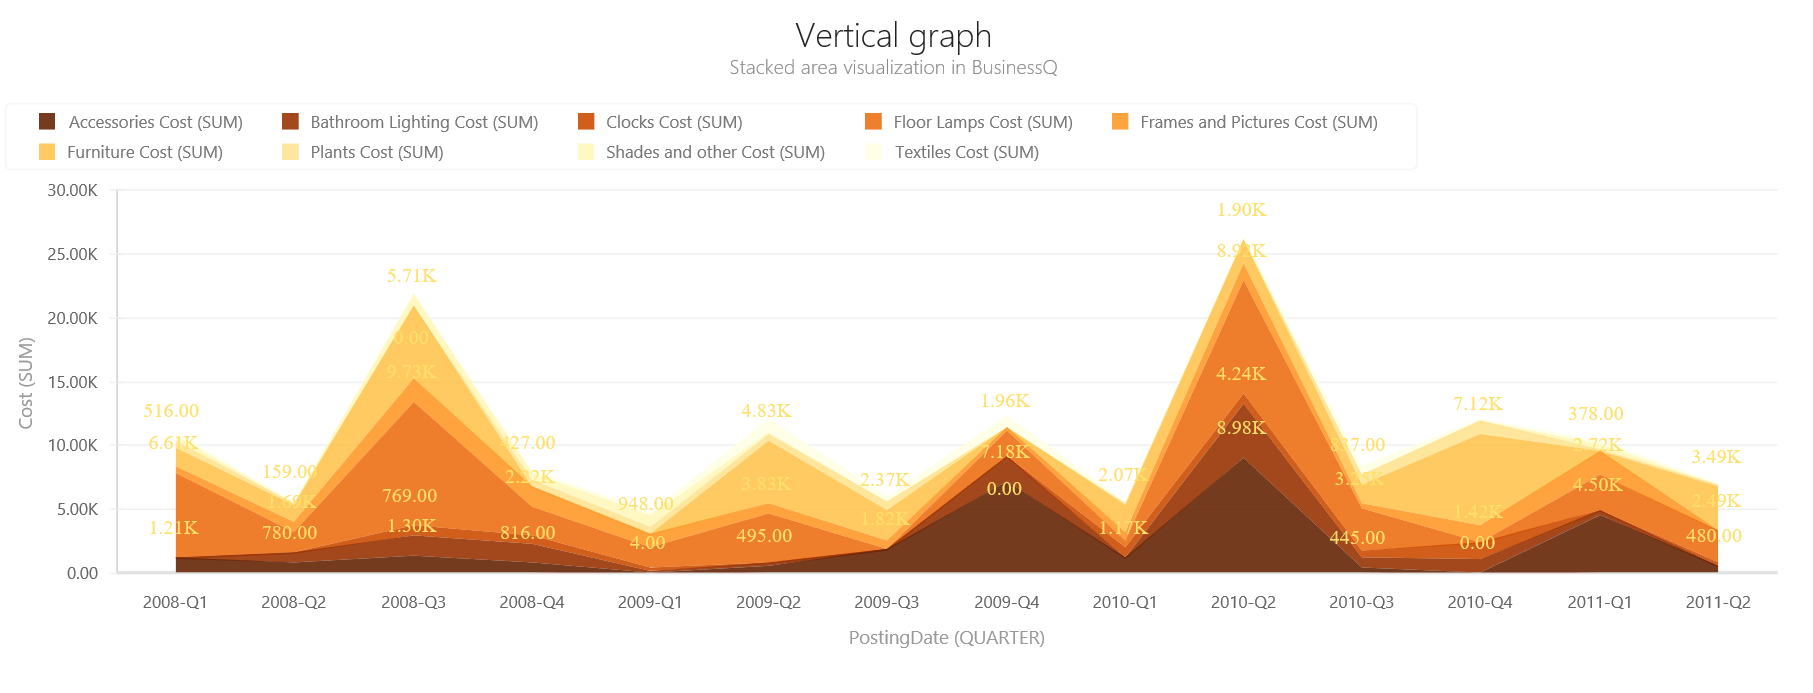 BQ_Vertical_graph_2_Vertical_Stacked_Area